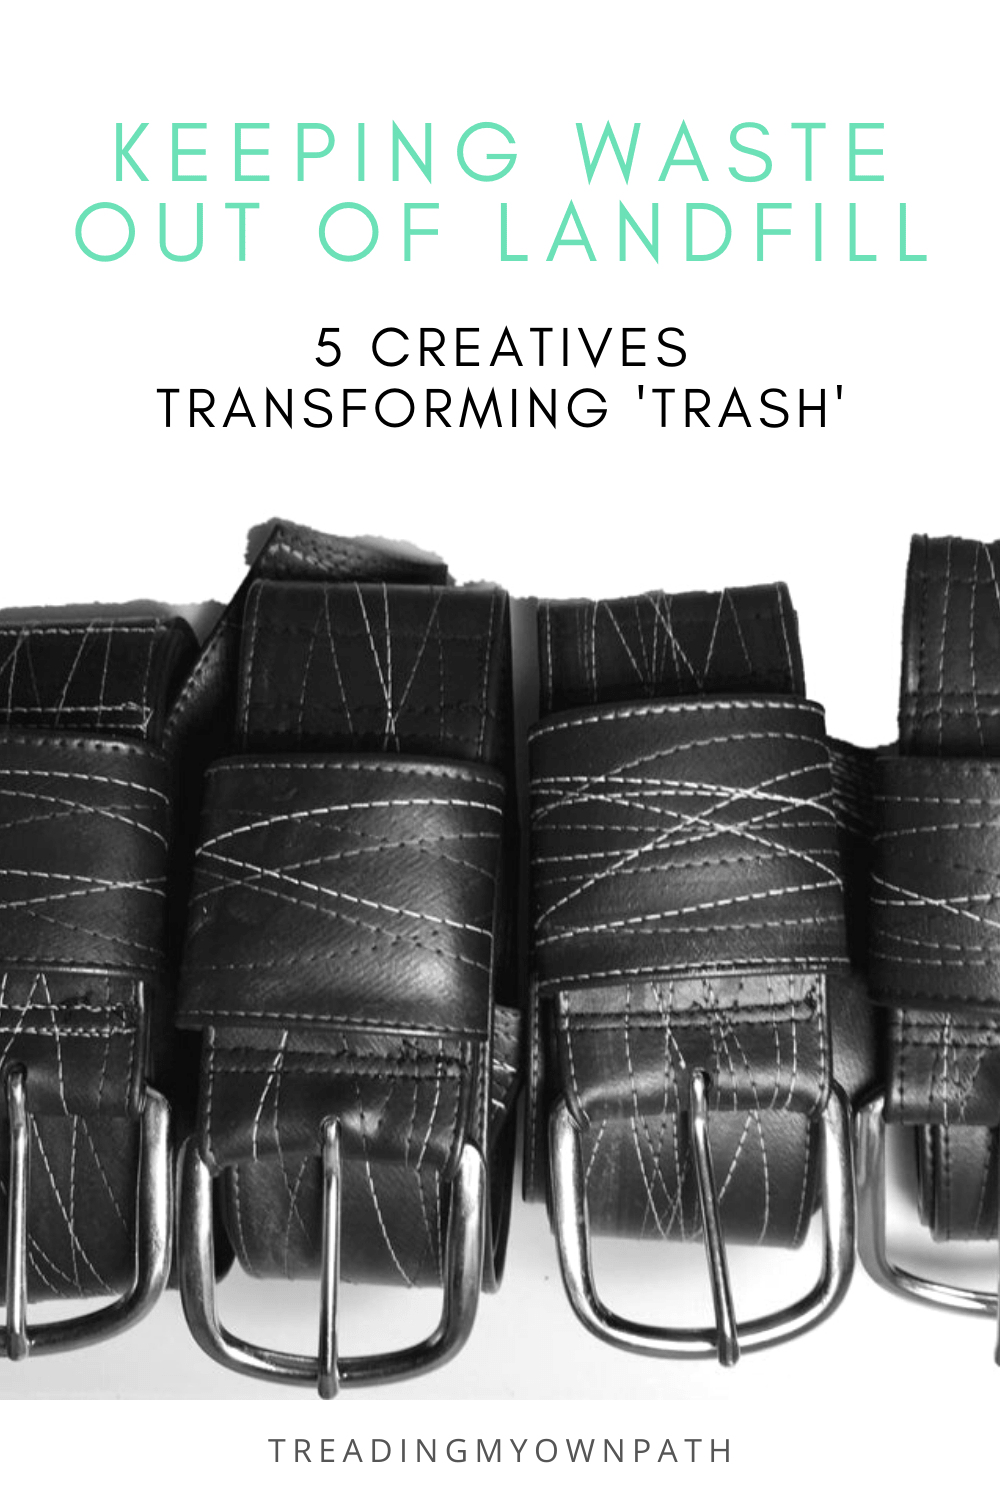 Keeping waste out of landfill: 5 creatives transforming \'trash\' into useful stuff